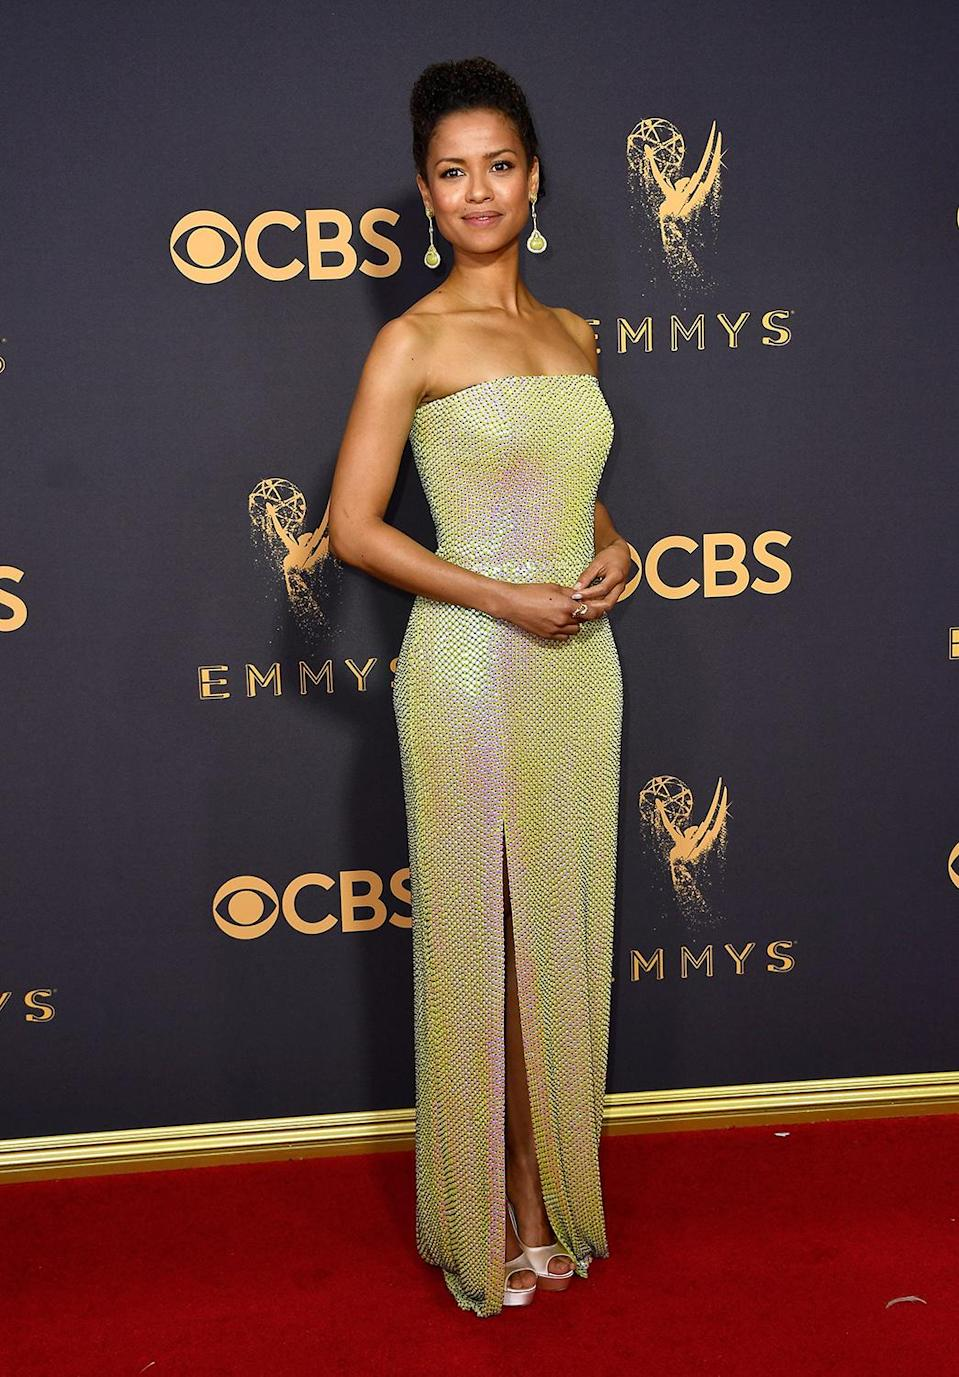 <p>Gugu Mbatha-Raw attends the 69th Annual Primetime Emmy Awards at Microsoft Theater on September 17, 2017 in Los Angeles, California. (Photo by Frazer Harrison/Getty Images) </p>